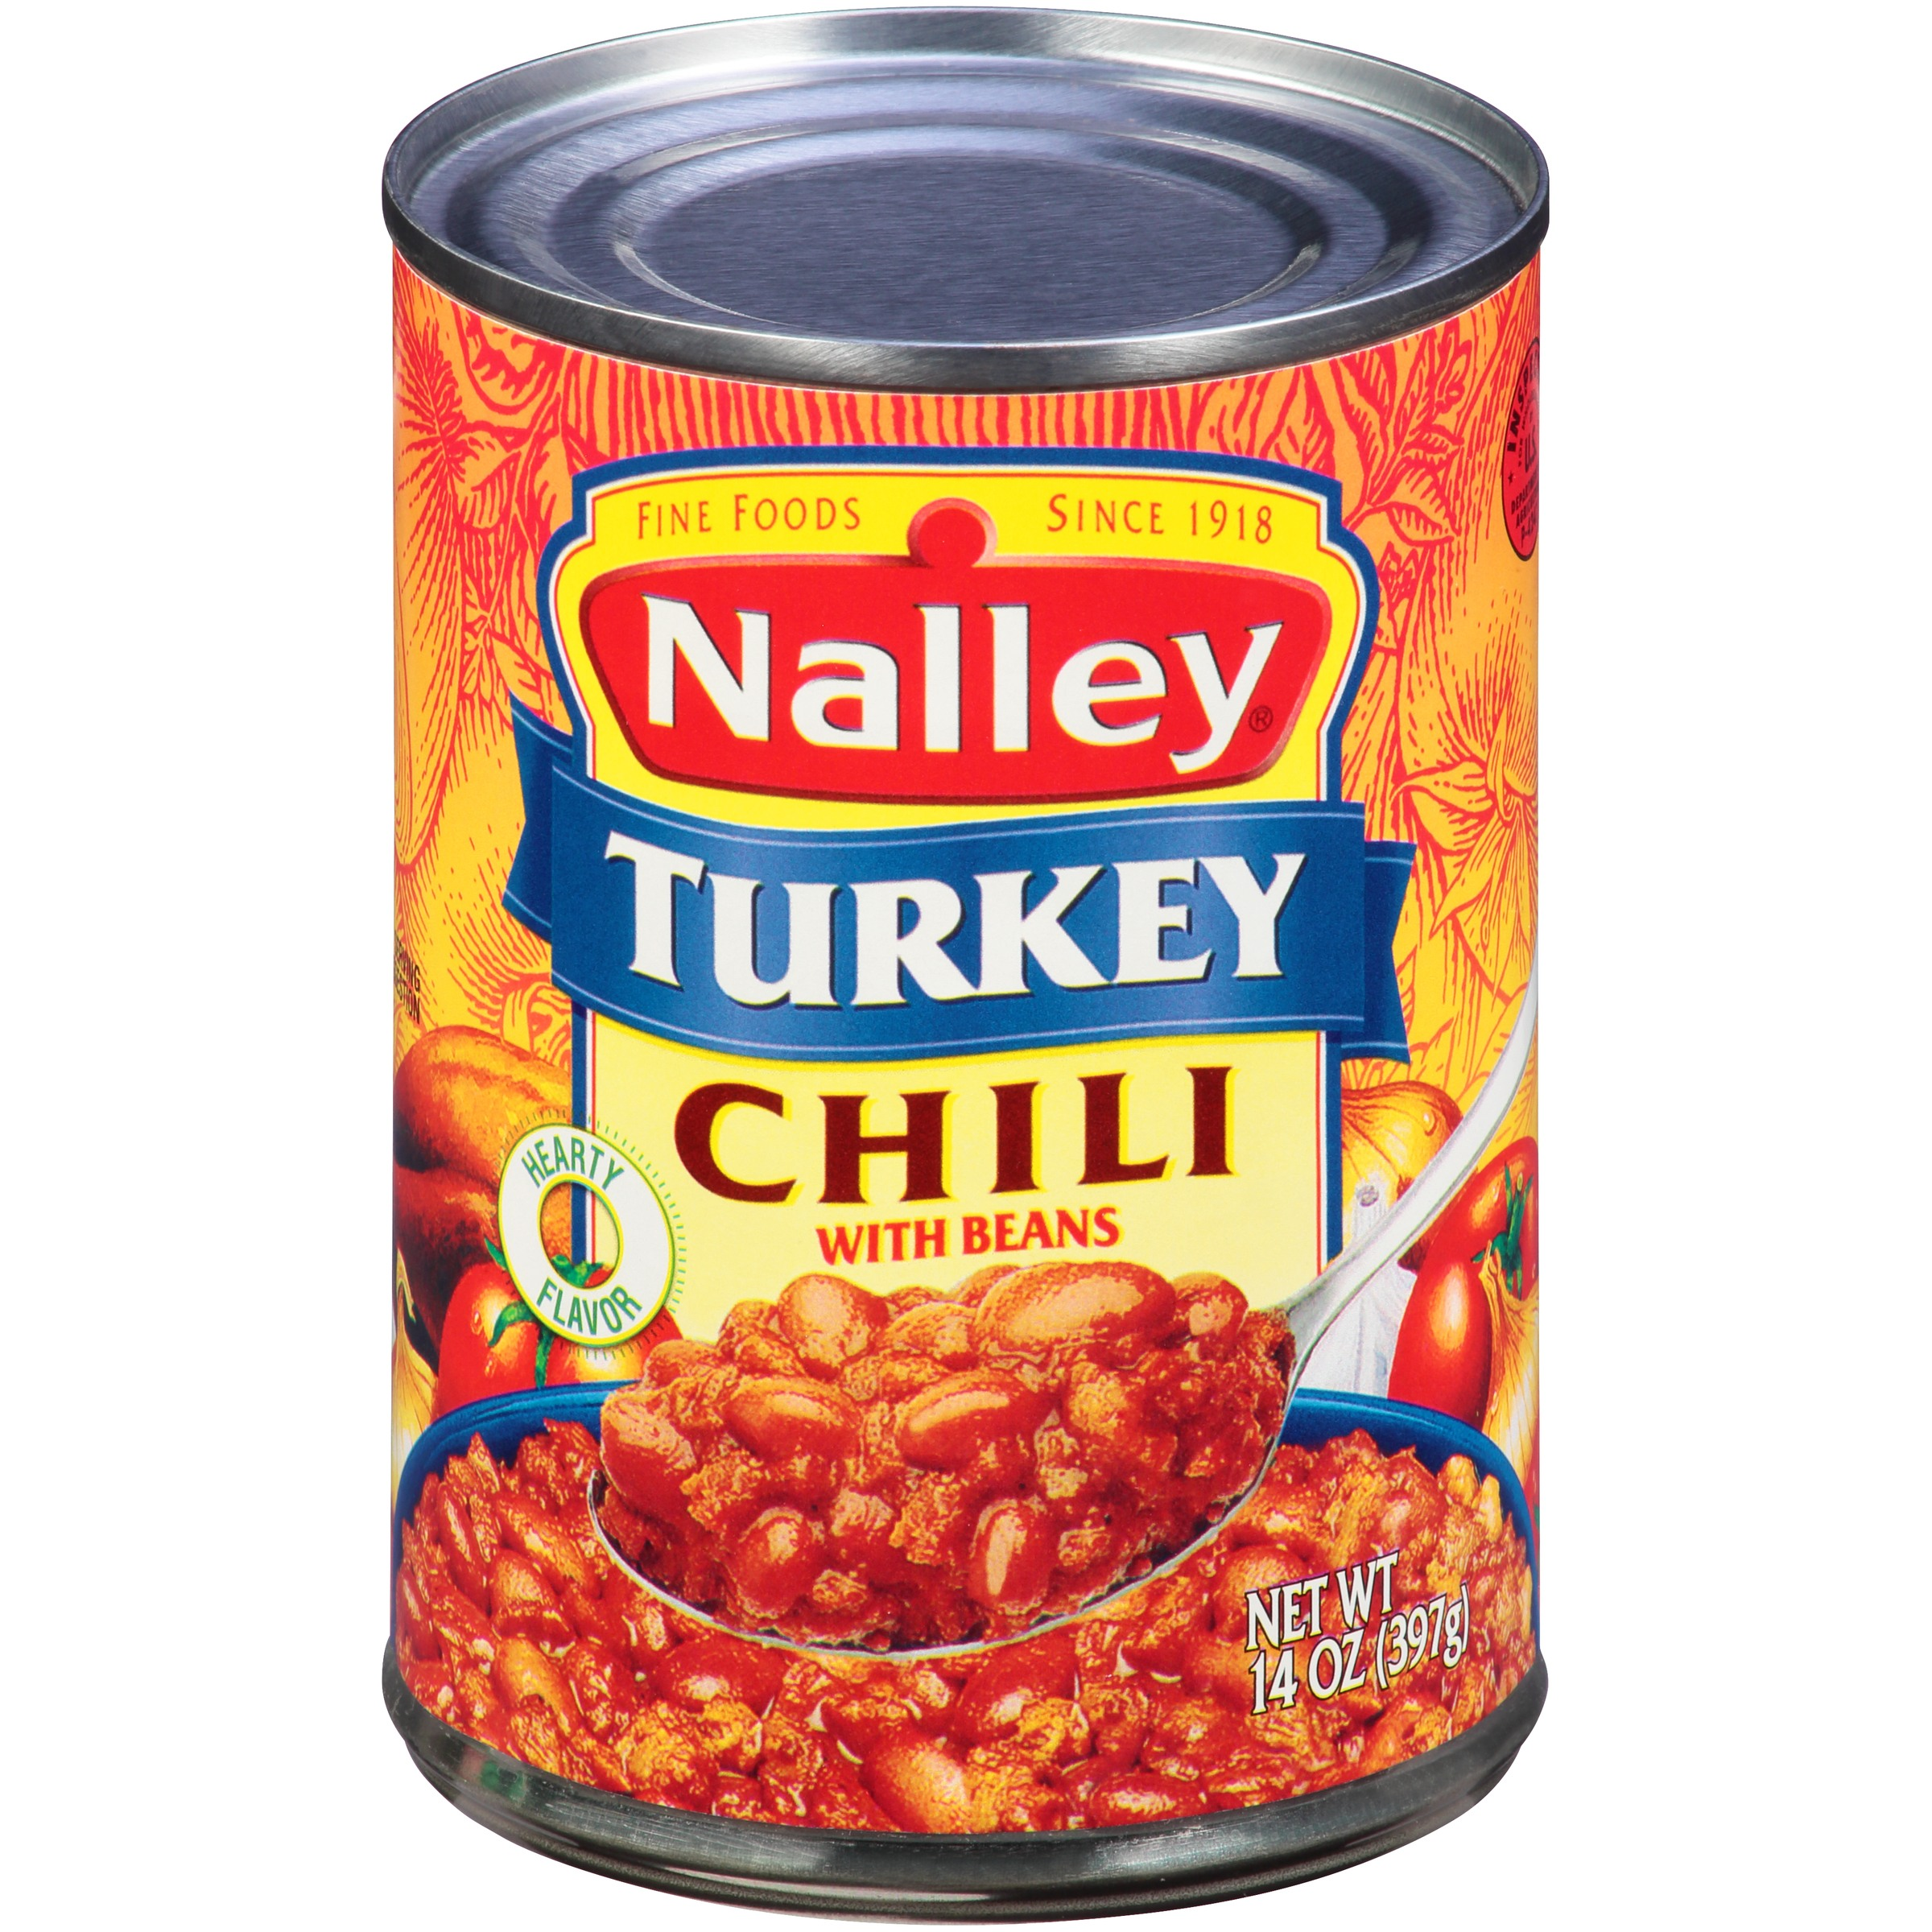 (6 Pack) Nalley Turkey Chili Con Carne With Beans, 15 Oz